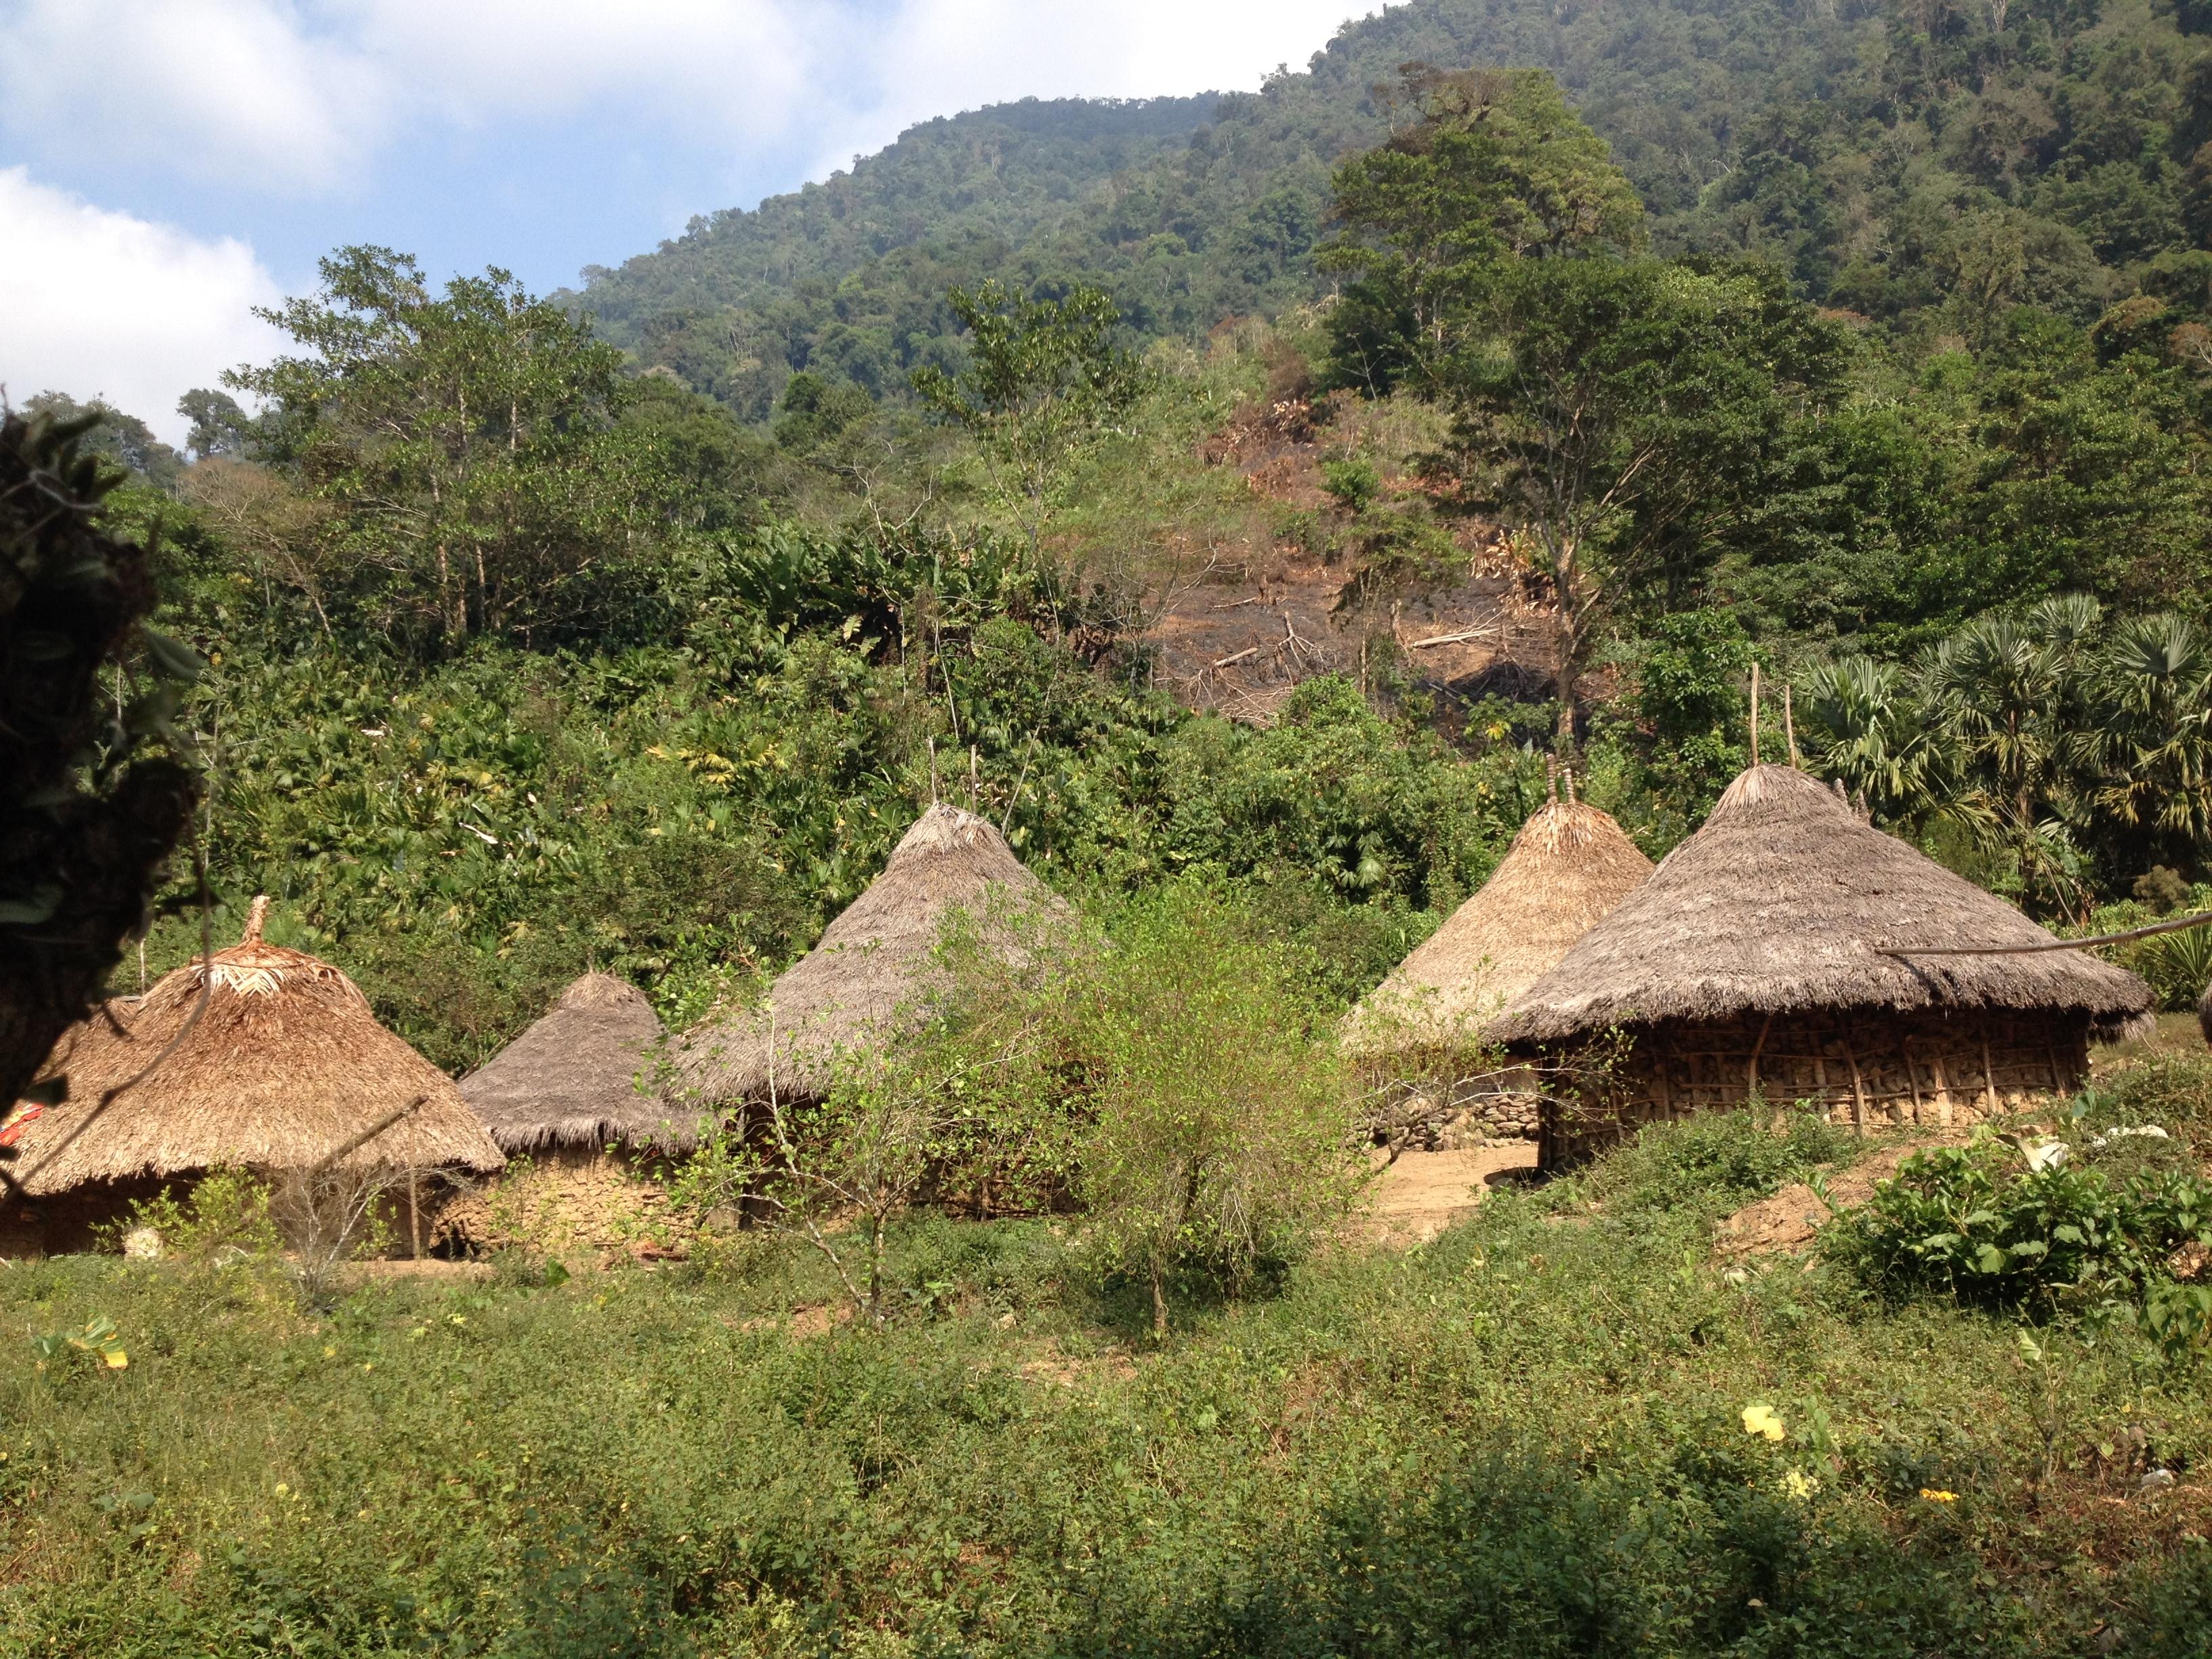 A settlement of the Tayrona we passed on the hike.  The huts are made of mud with thatched roofs.